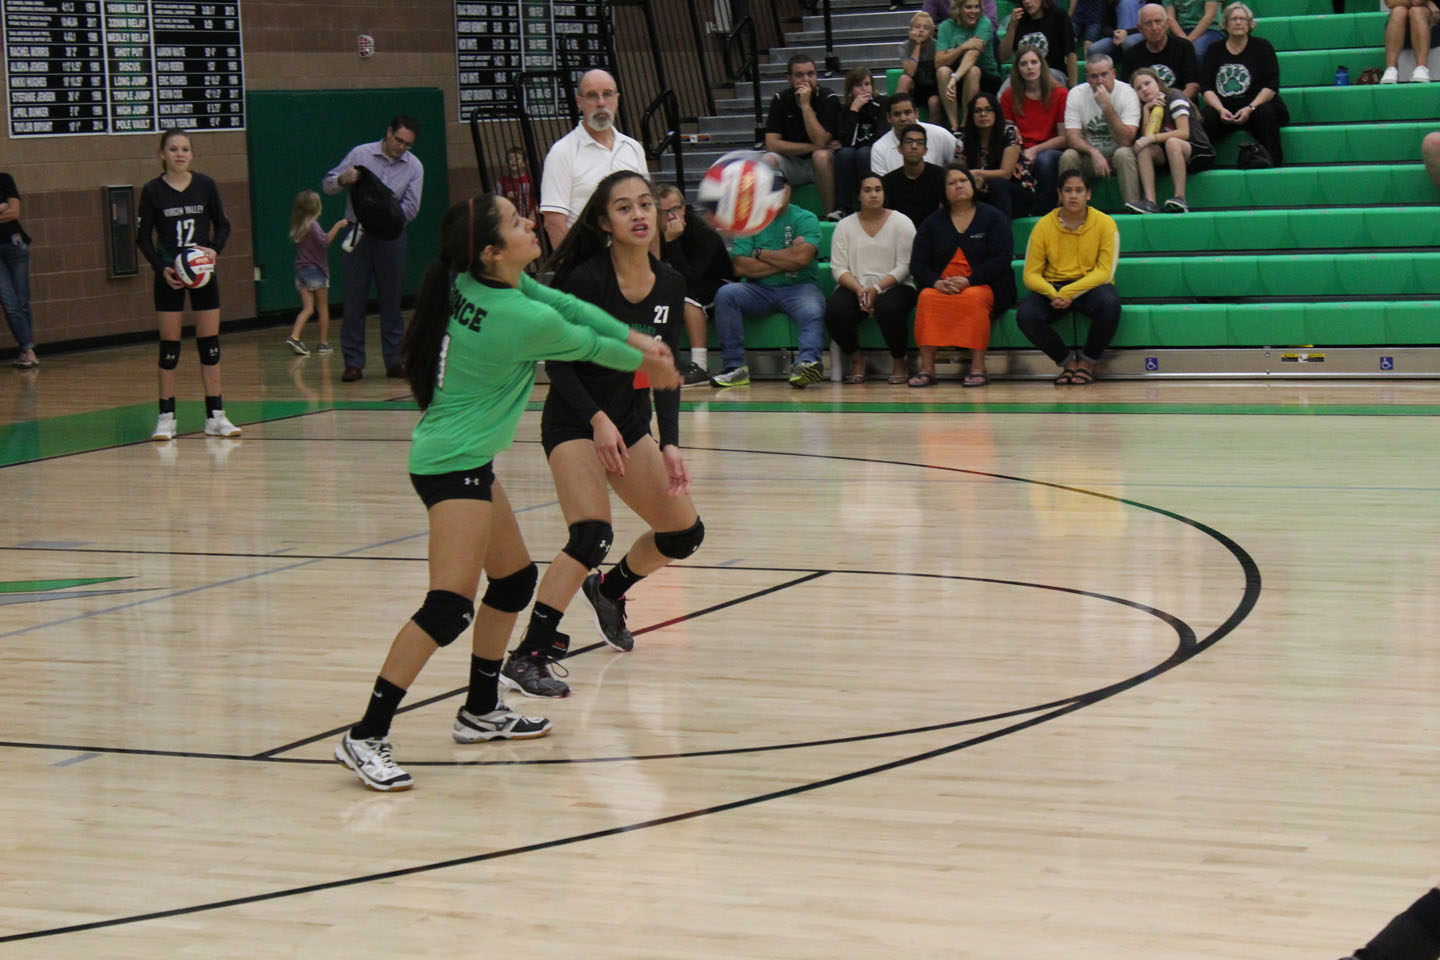 Lady Bulldogs defeat Sunrise in five games | Mesquite Local News